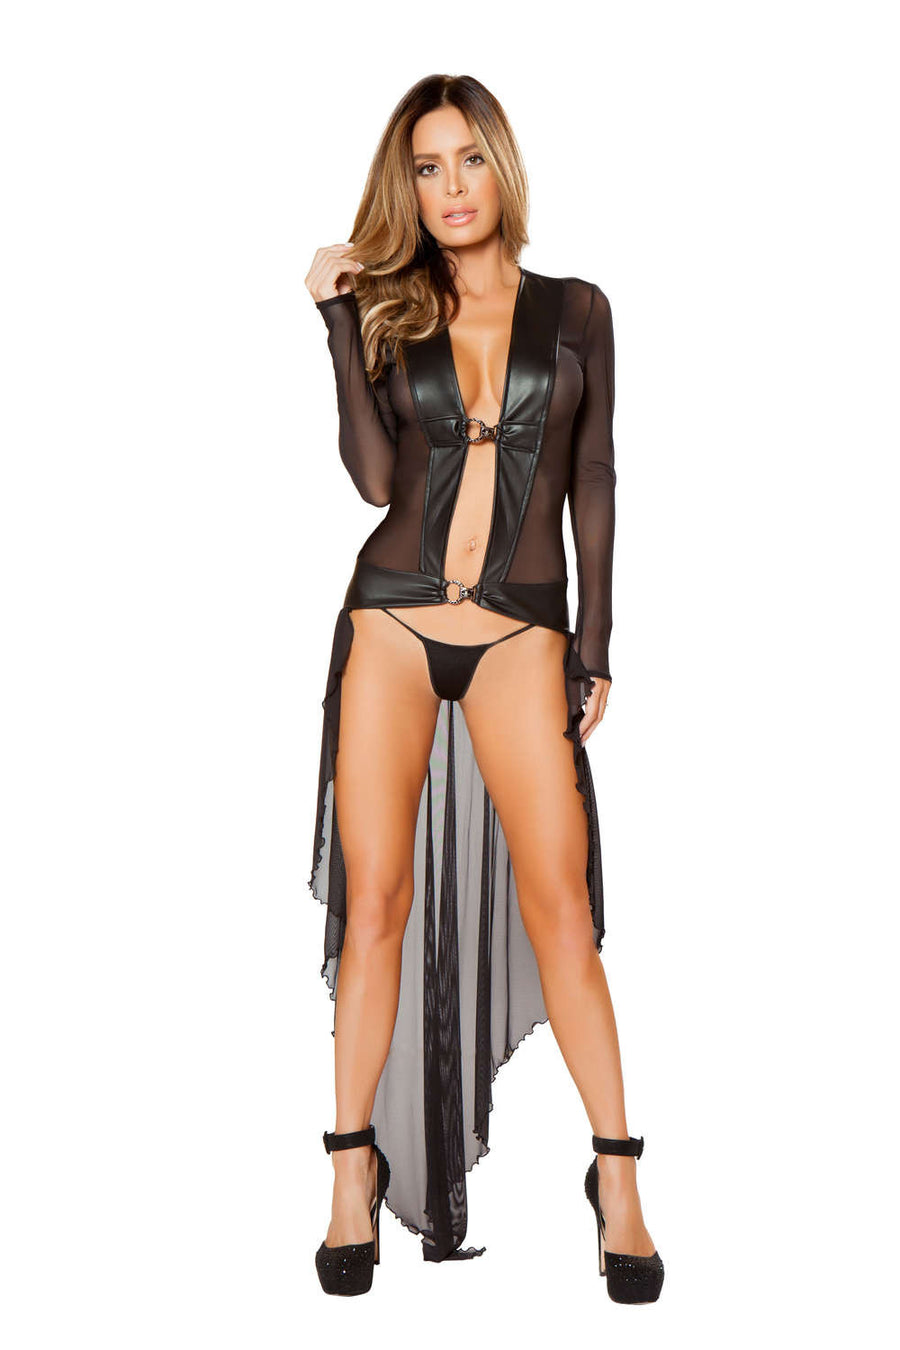 847c1006bbe Roma Costume Female 2Pc Sheer Robe With Hooks   Gstring LI130 ...